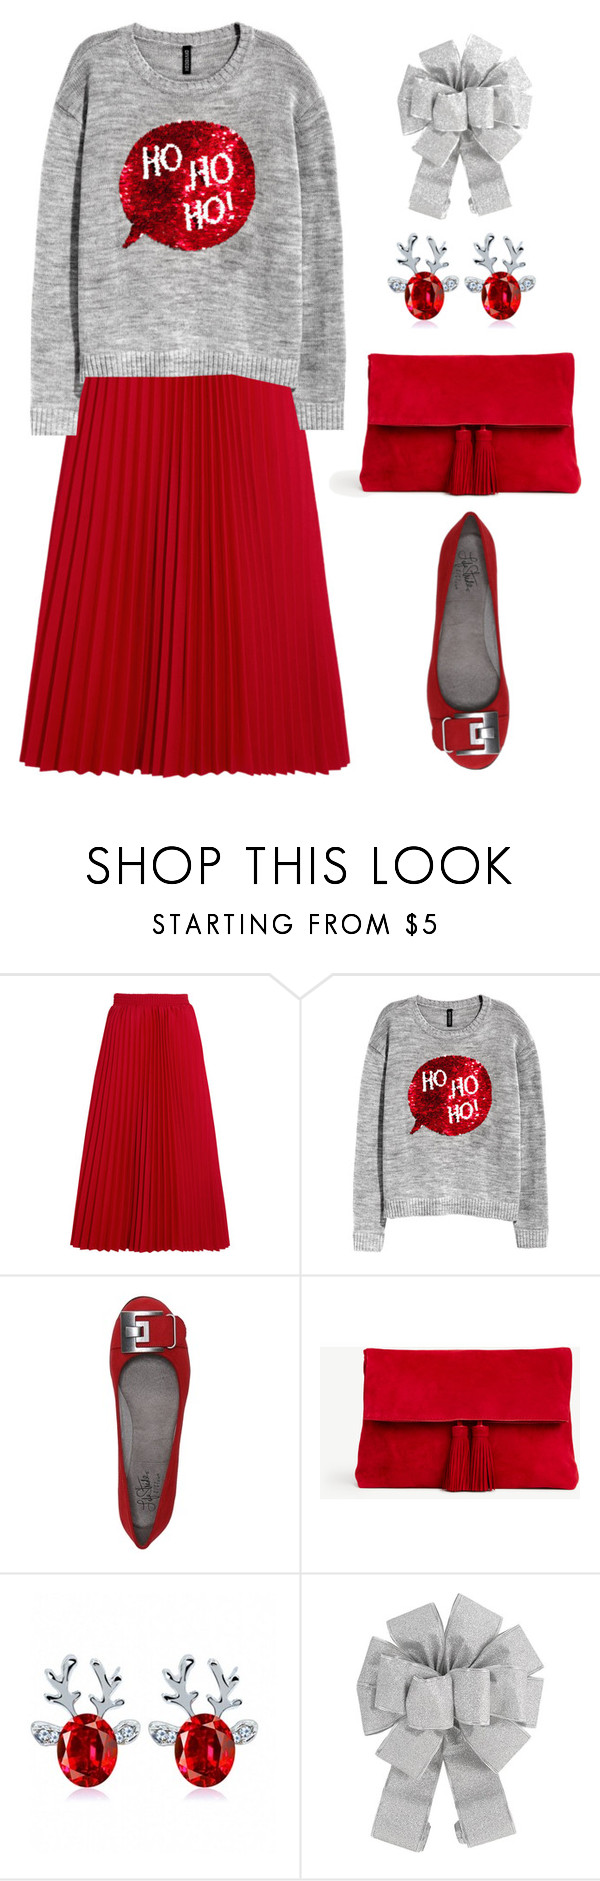 """""""Untitled #1615"""" by ebramos ❤ liked on Polyvore featuring Balenciaga and Ann Taylor"""